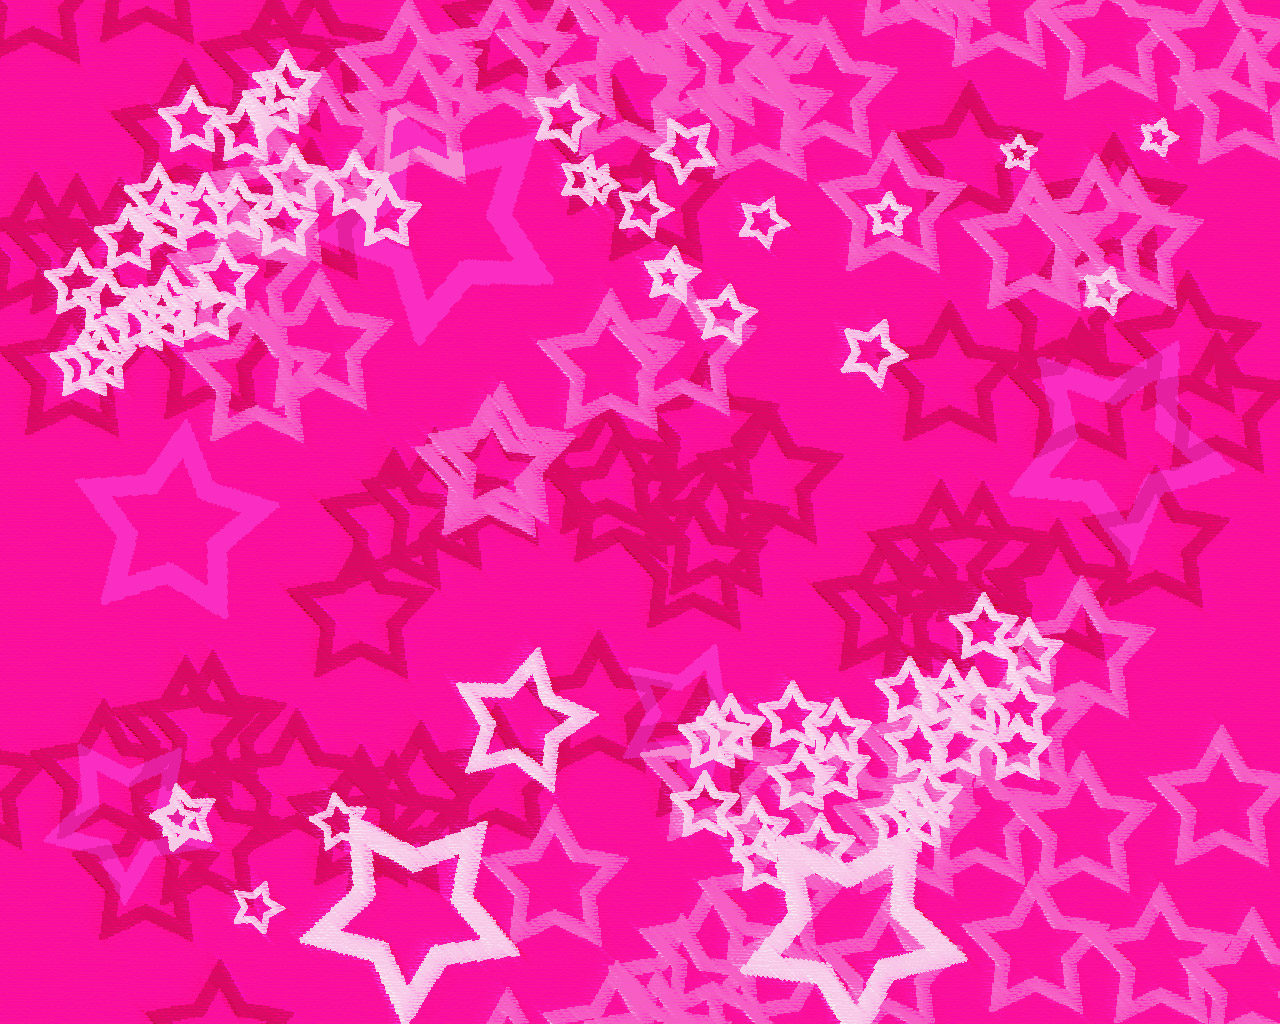 cute pink wallpaper Funny amp Amazing Images 1280x1024